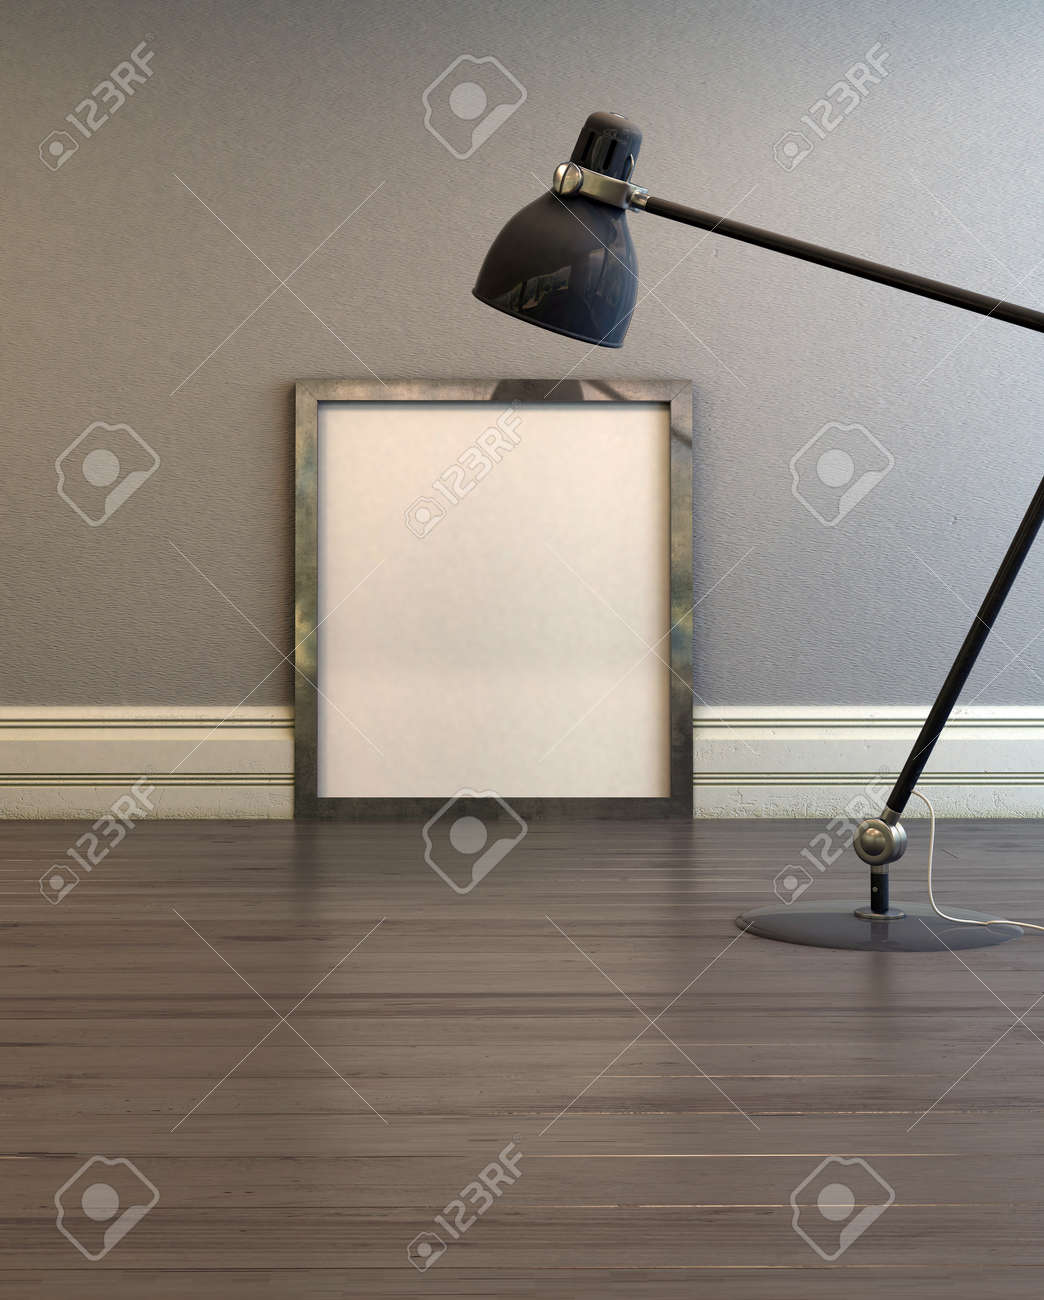 Empty picture frame illuminated by an anglepoise lamp standing empty picture frame illuminated by an anglepoise lamp standing on a wooden floor leaning against a aloadofball Image collections